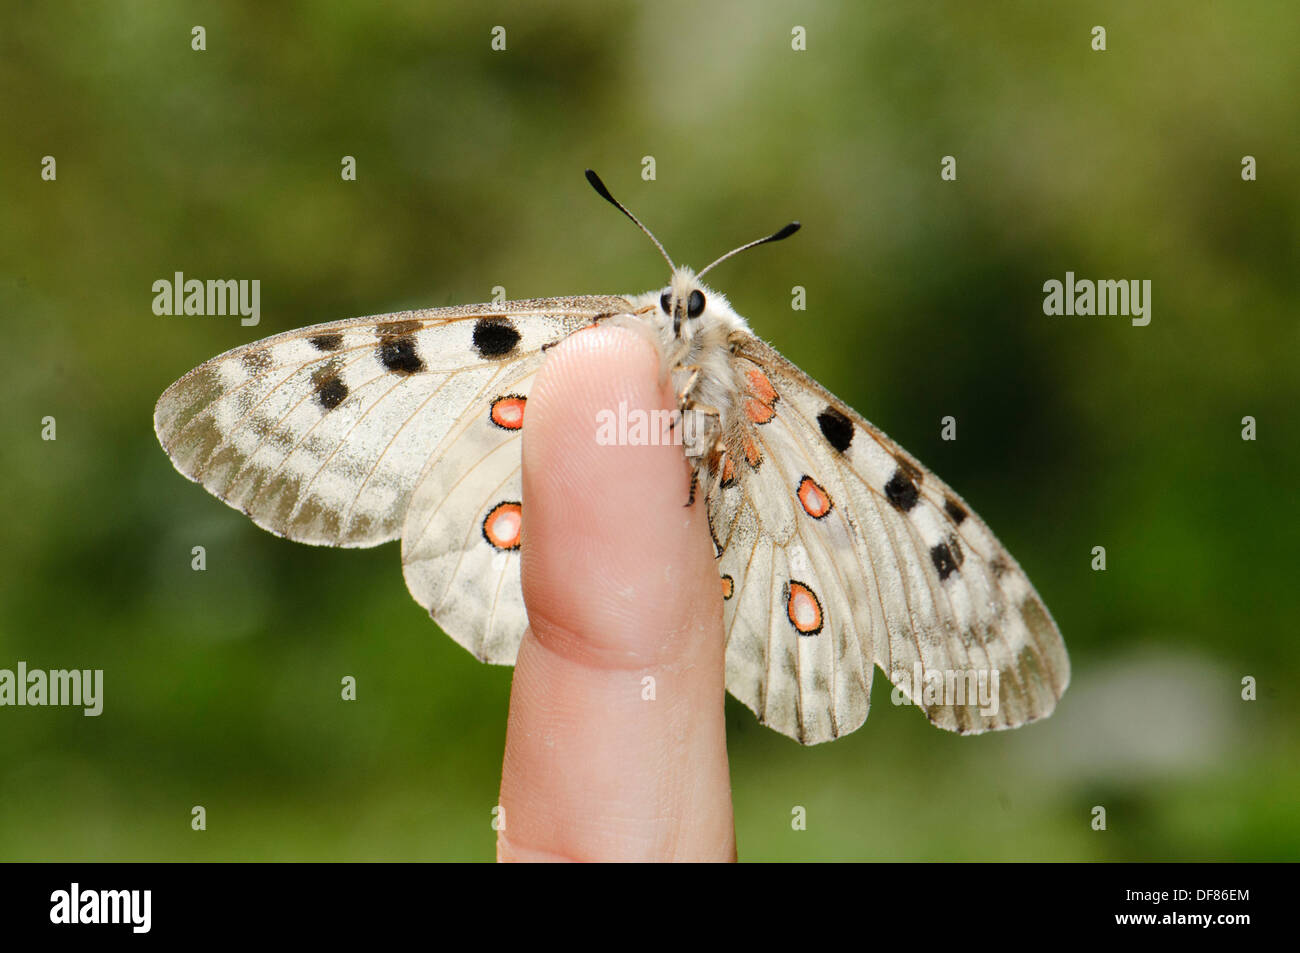 Parnassius apollo is in Southern Europe confined to high mountain areas mostly in the Pyrenees where it was confined at the end - Stock Image